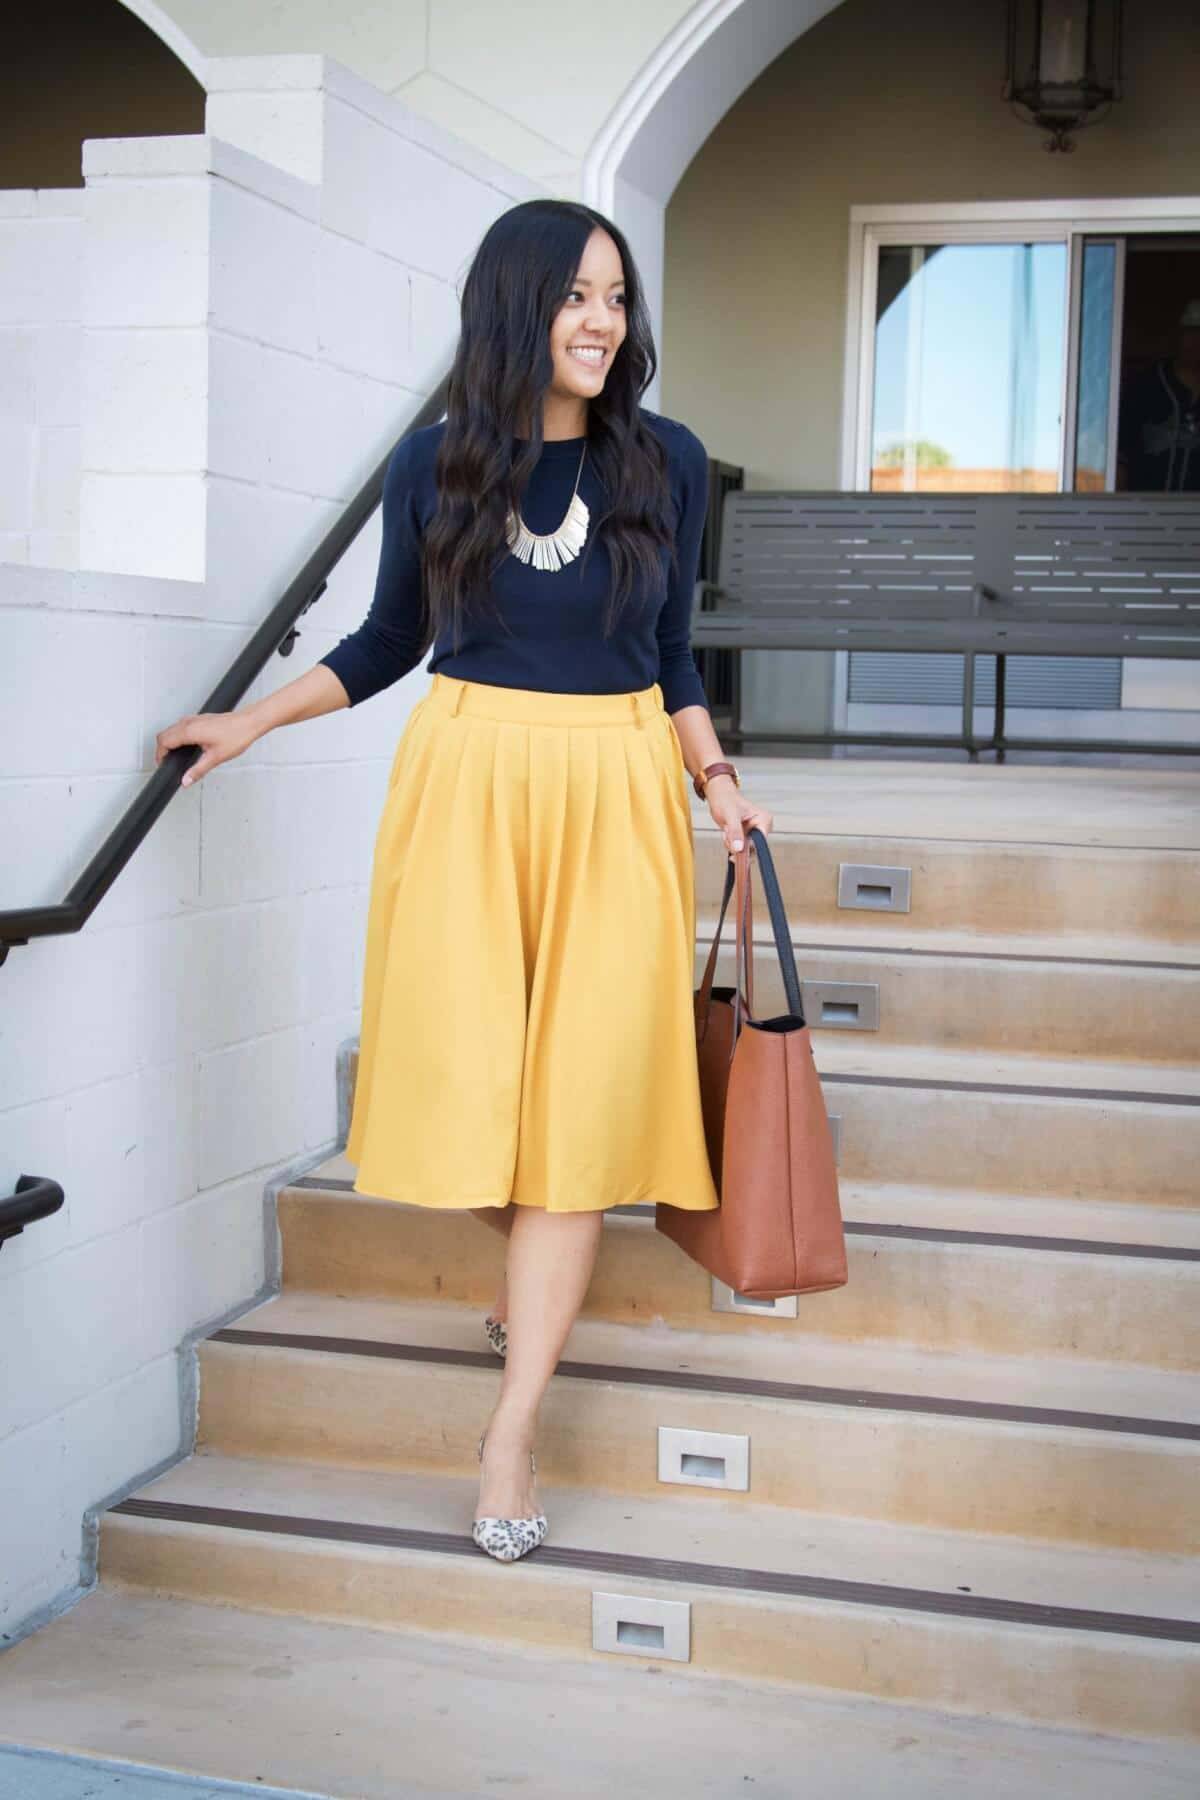 Dressy Outfit: solid-colored top navy sweater + yellow mid skirt + gold statement necklace + tan tote + leopard flats